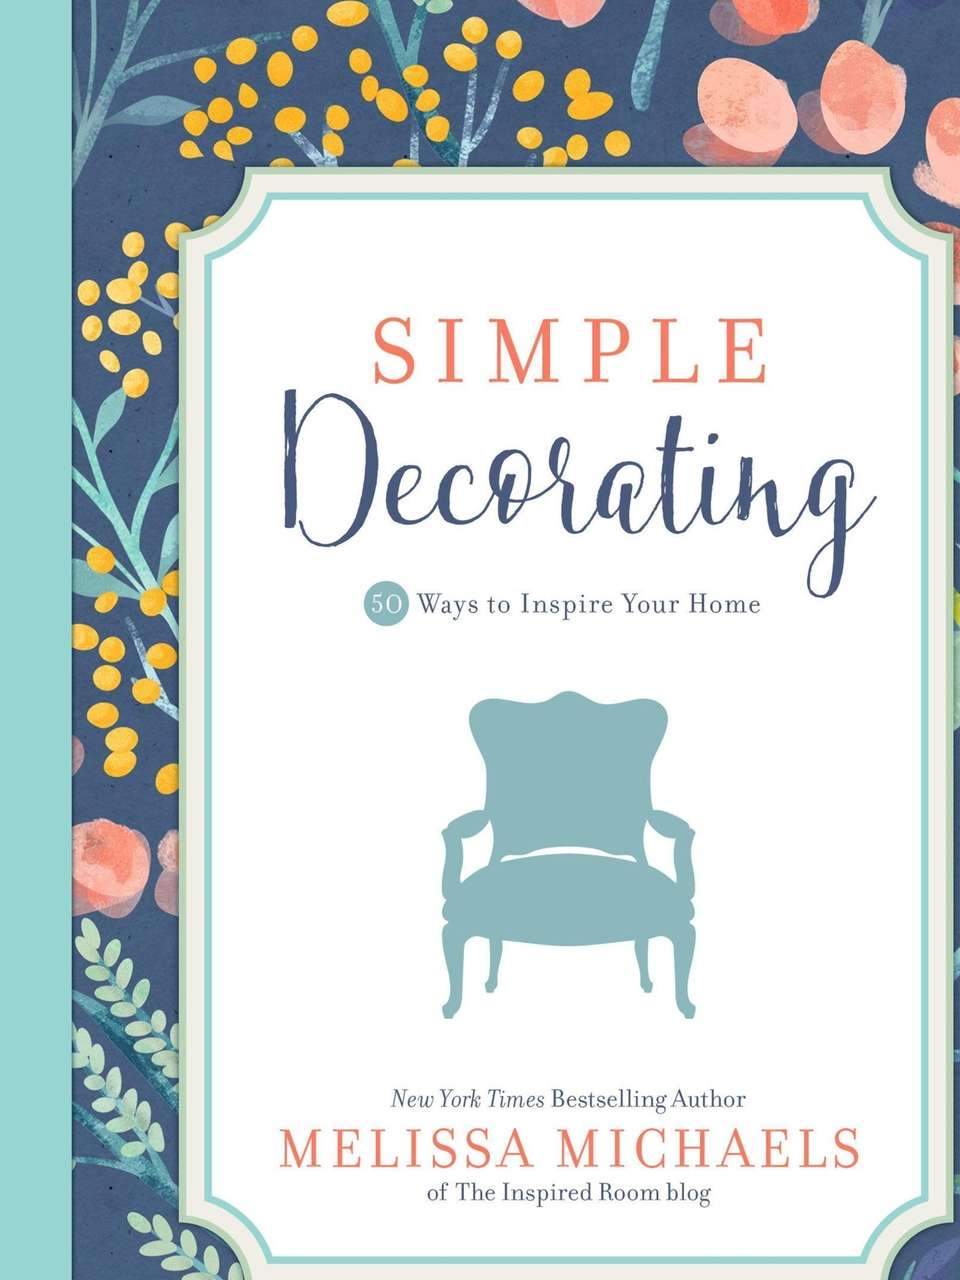 Melissa Michaels, the scribe behind The Inspired Room